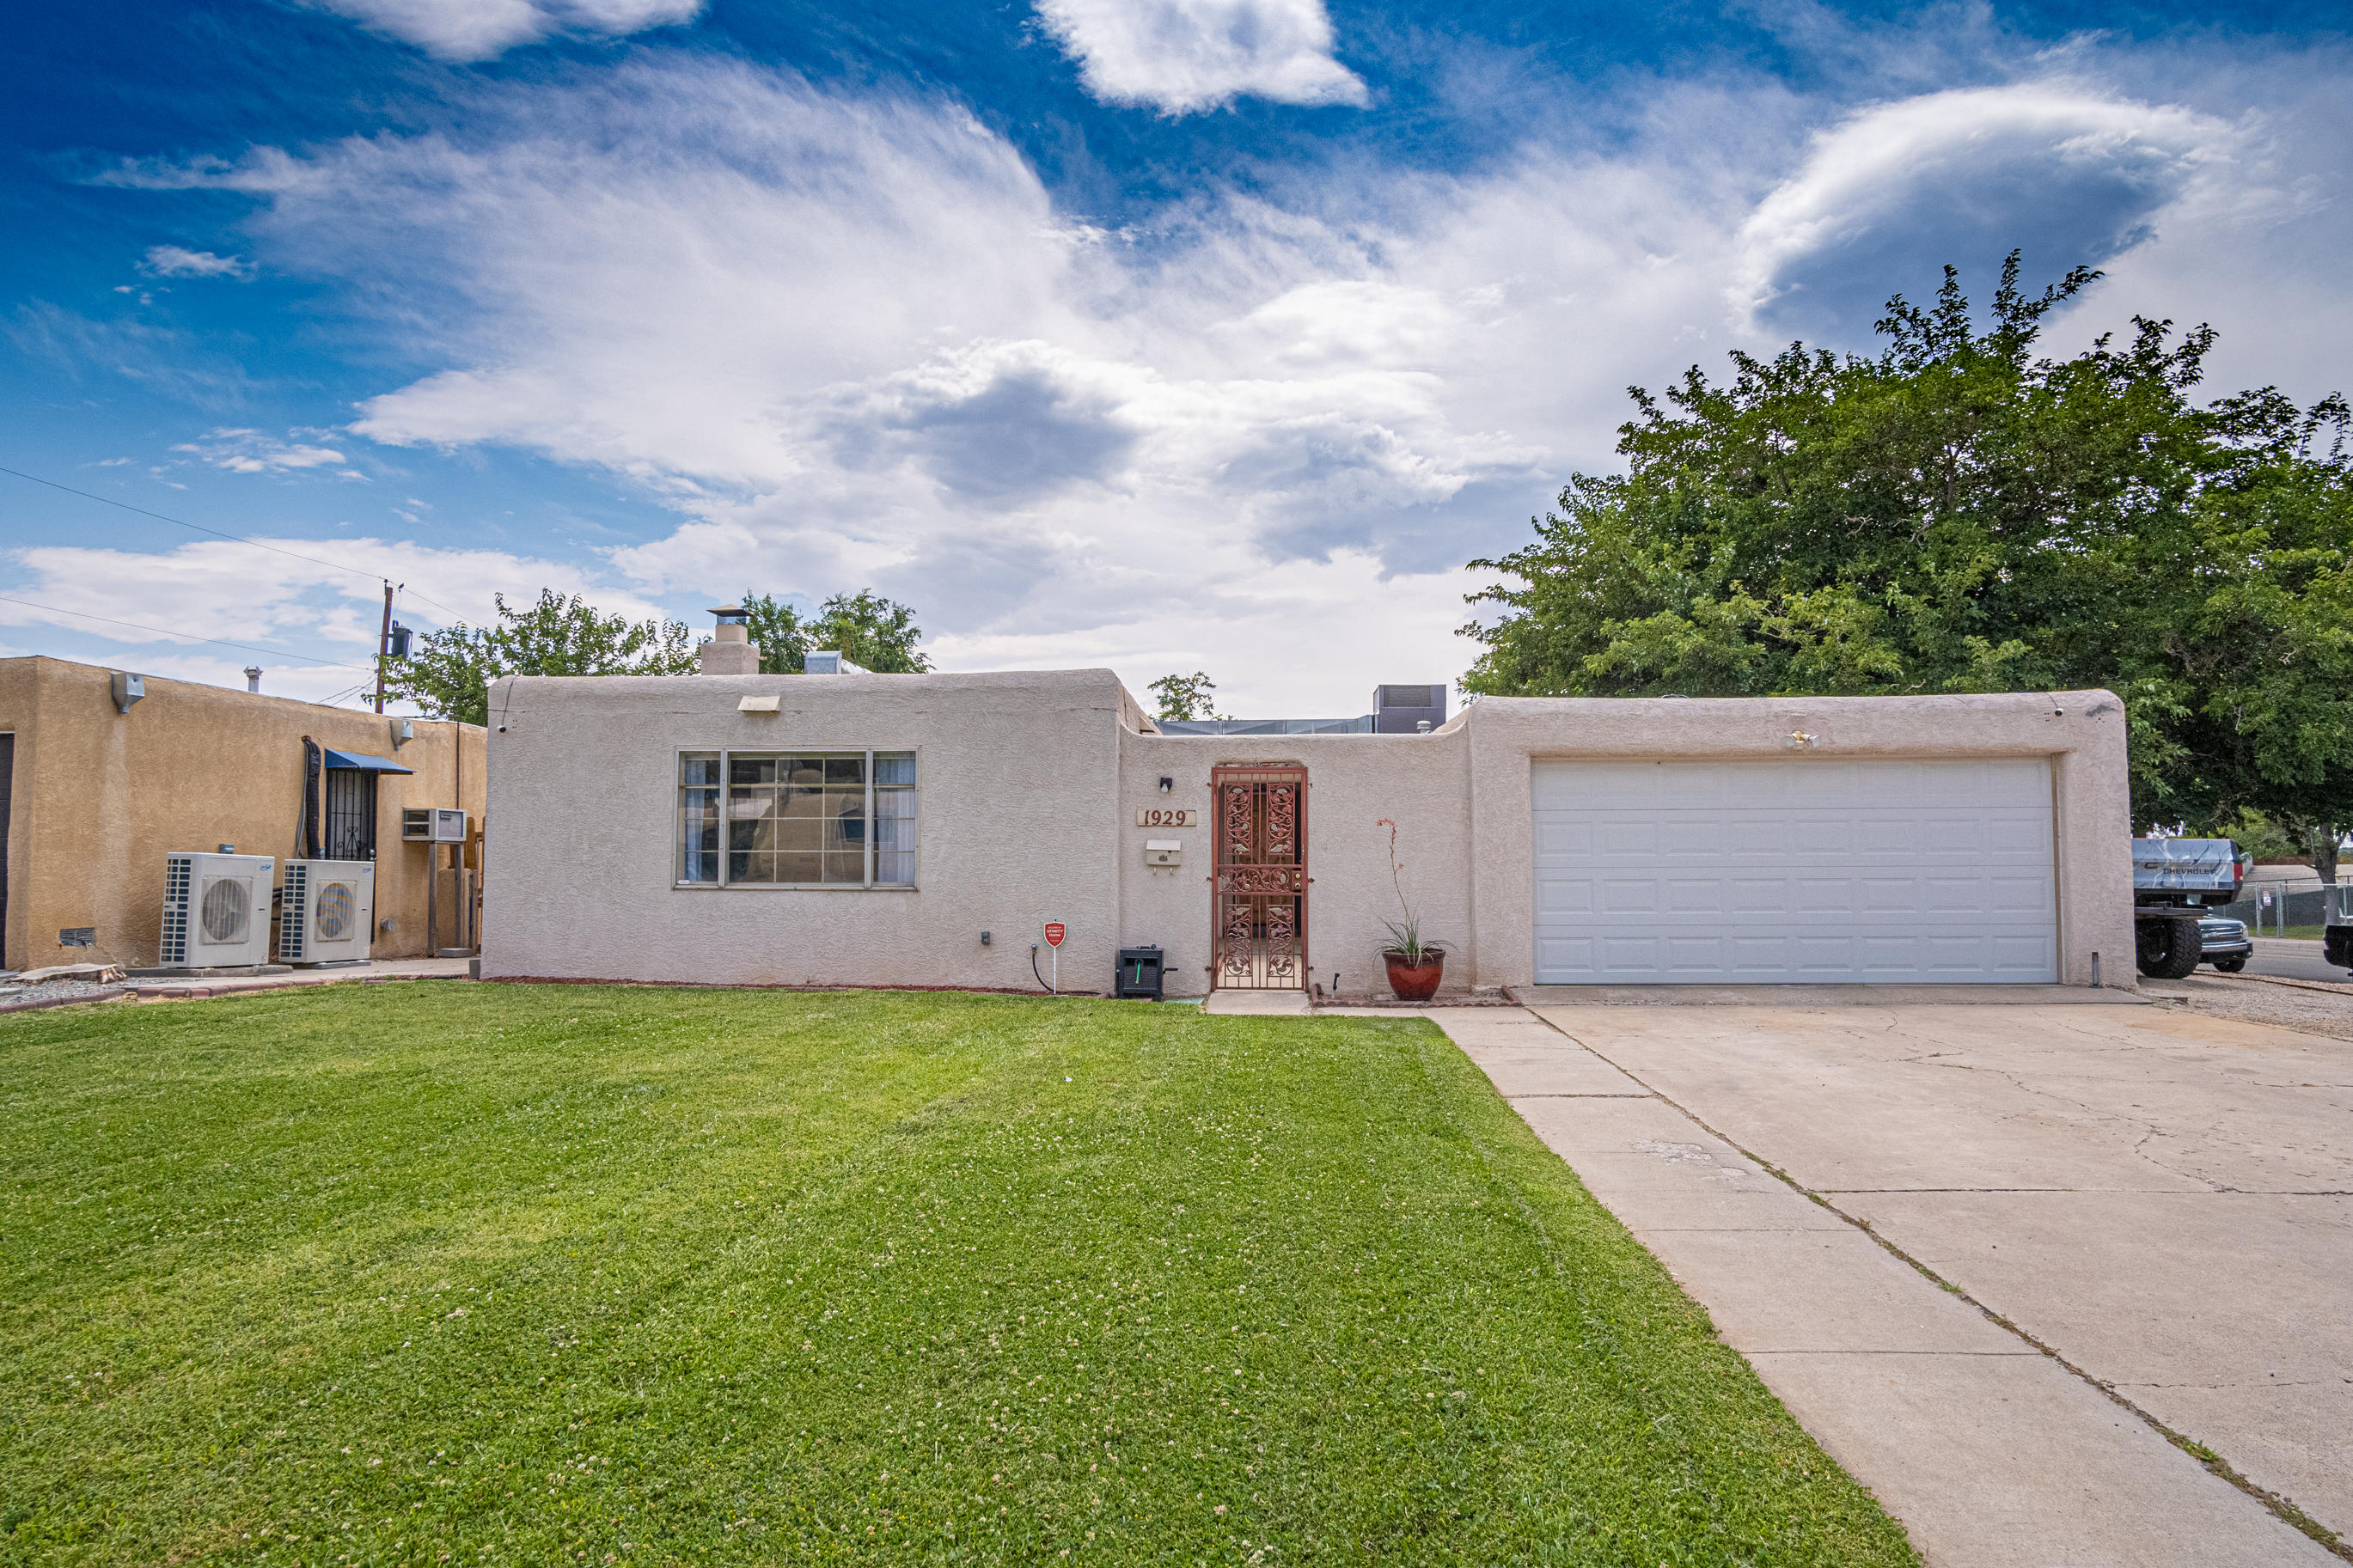 BEAUTIFULLY REMODELED SINGLE STORY HOME IN THE NE HEIGHTS!!!  This 1961SF Home has 2 large living areas, 3 bedrooms, 2 baths and 2 car garage and has many recent updates!  Master bath was remodeled in 2021, New Ref AC 2020 with 10 year warranty, New security camera system with 8 cameras stays, New Kitchen Appliances 2021, FP & Wood burning stove, beautiful laminate flooring and ceramic tile.  NO CARPET!! Kitchen has beautiful Cabinets, Concrete counters, Tile back splash! The front courtyard has a nice security gate! You will love the shady backyard and large covered patio!! Front and back yards are nicely landscaped with lawns and shade trees!  Two large storage sheds in the backyard stay! There is a side area for parking an RV, etc!